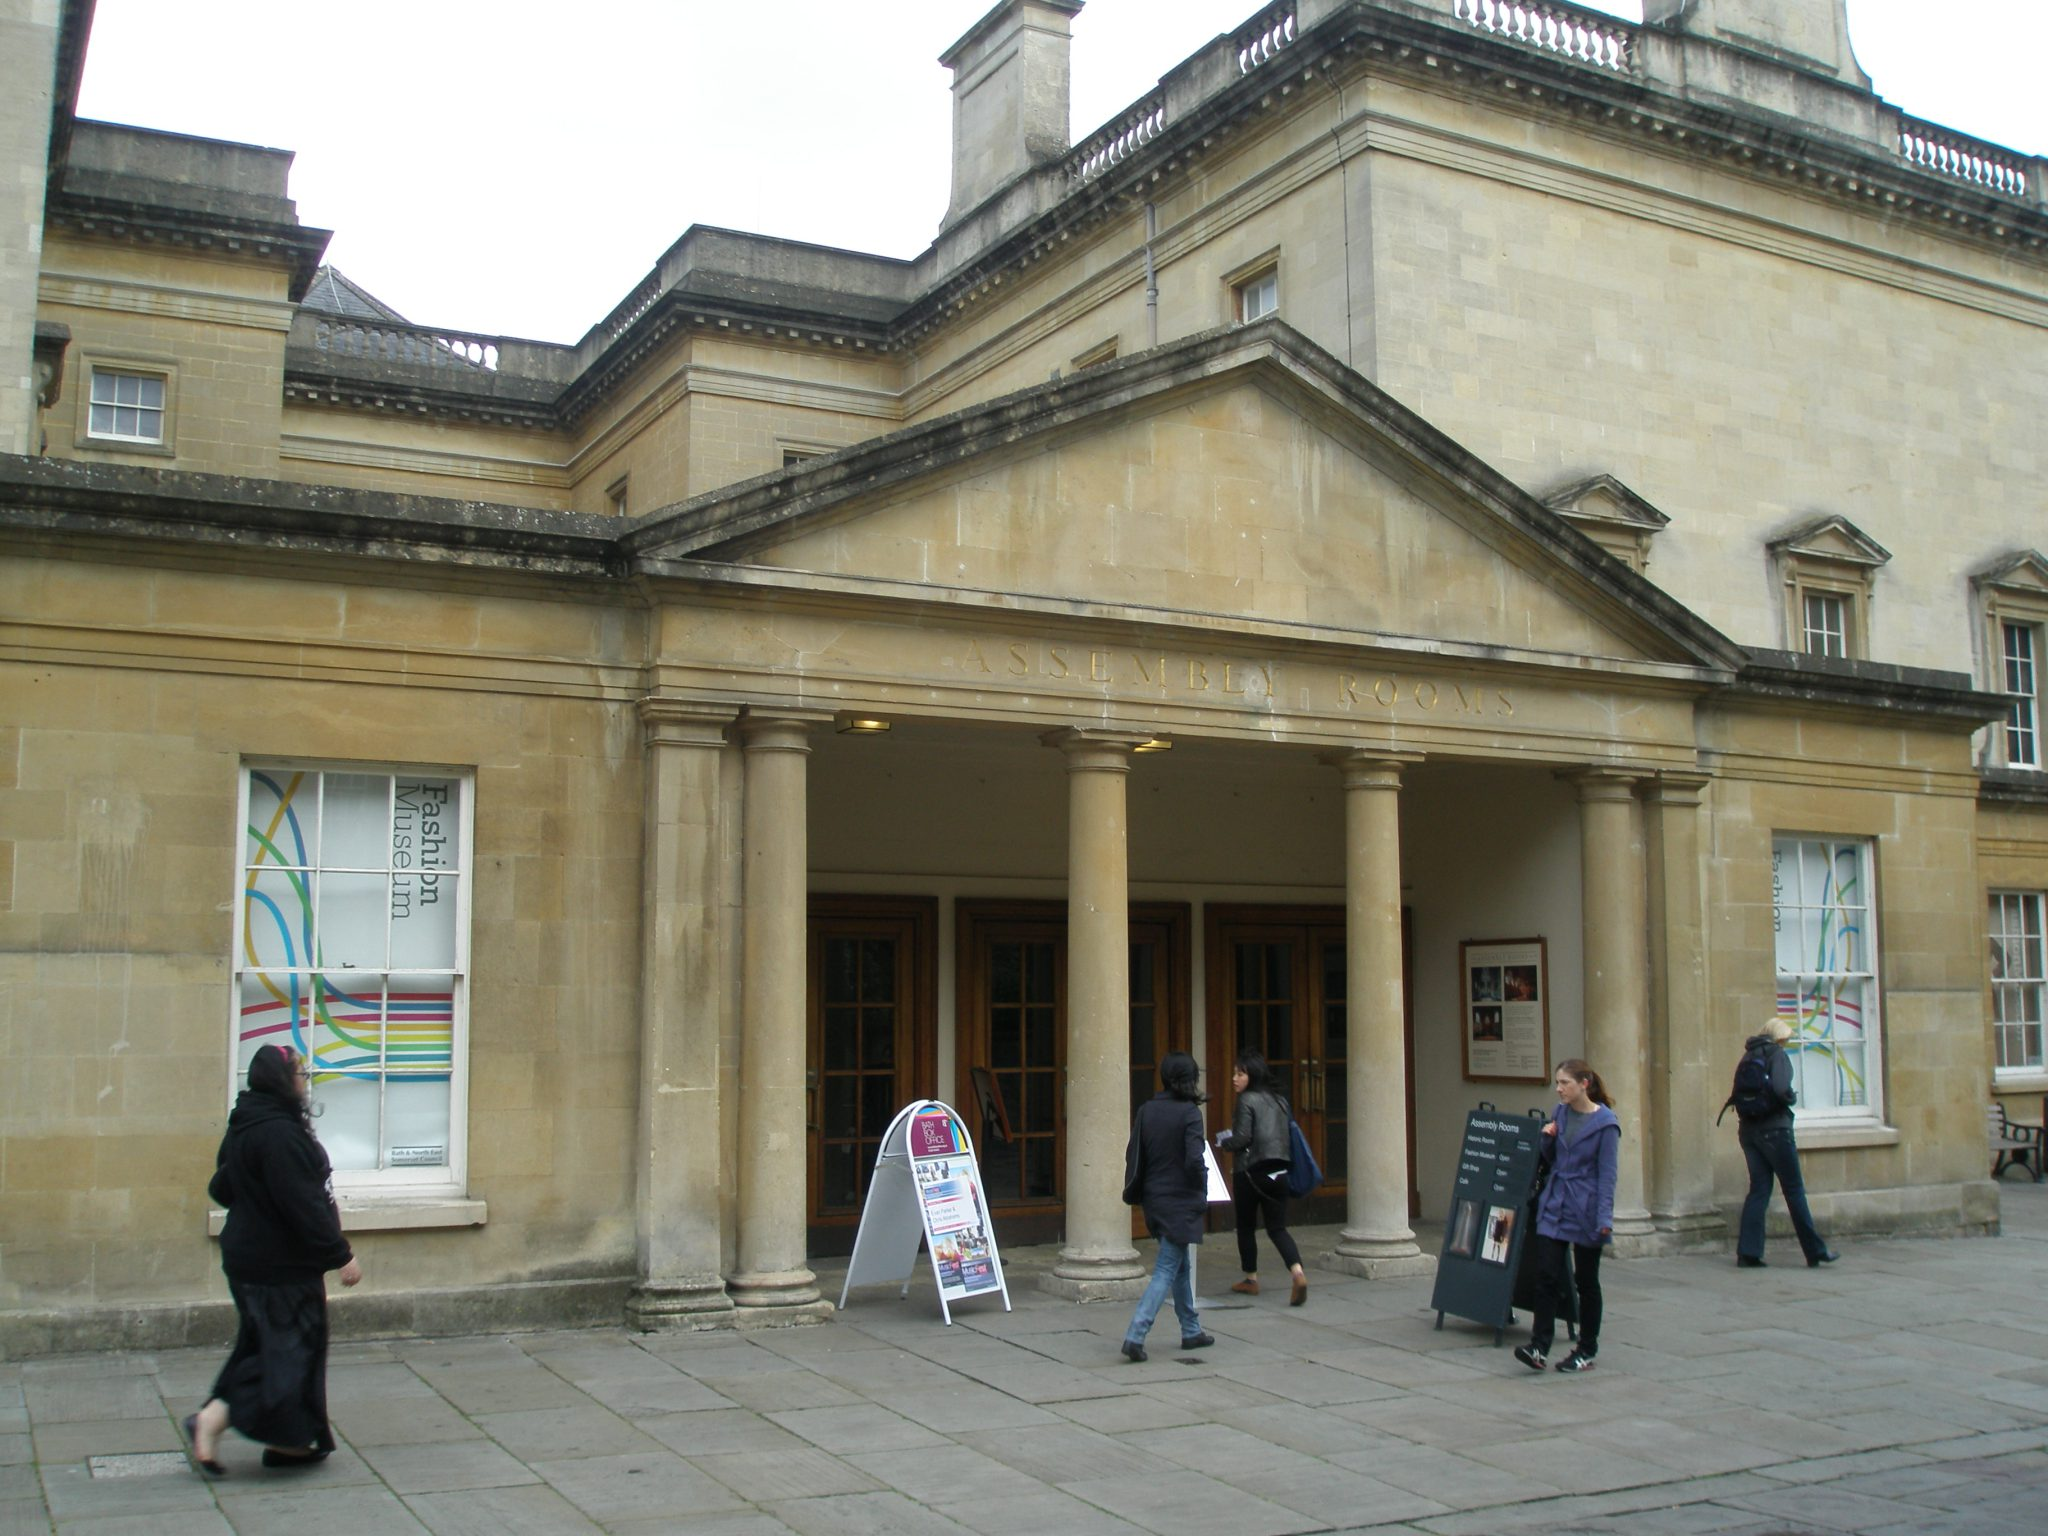 Entrance to The Assembly Rooms